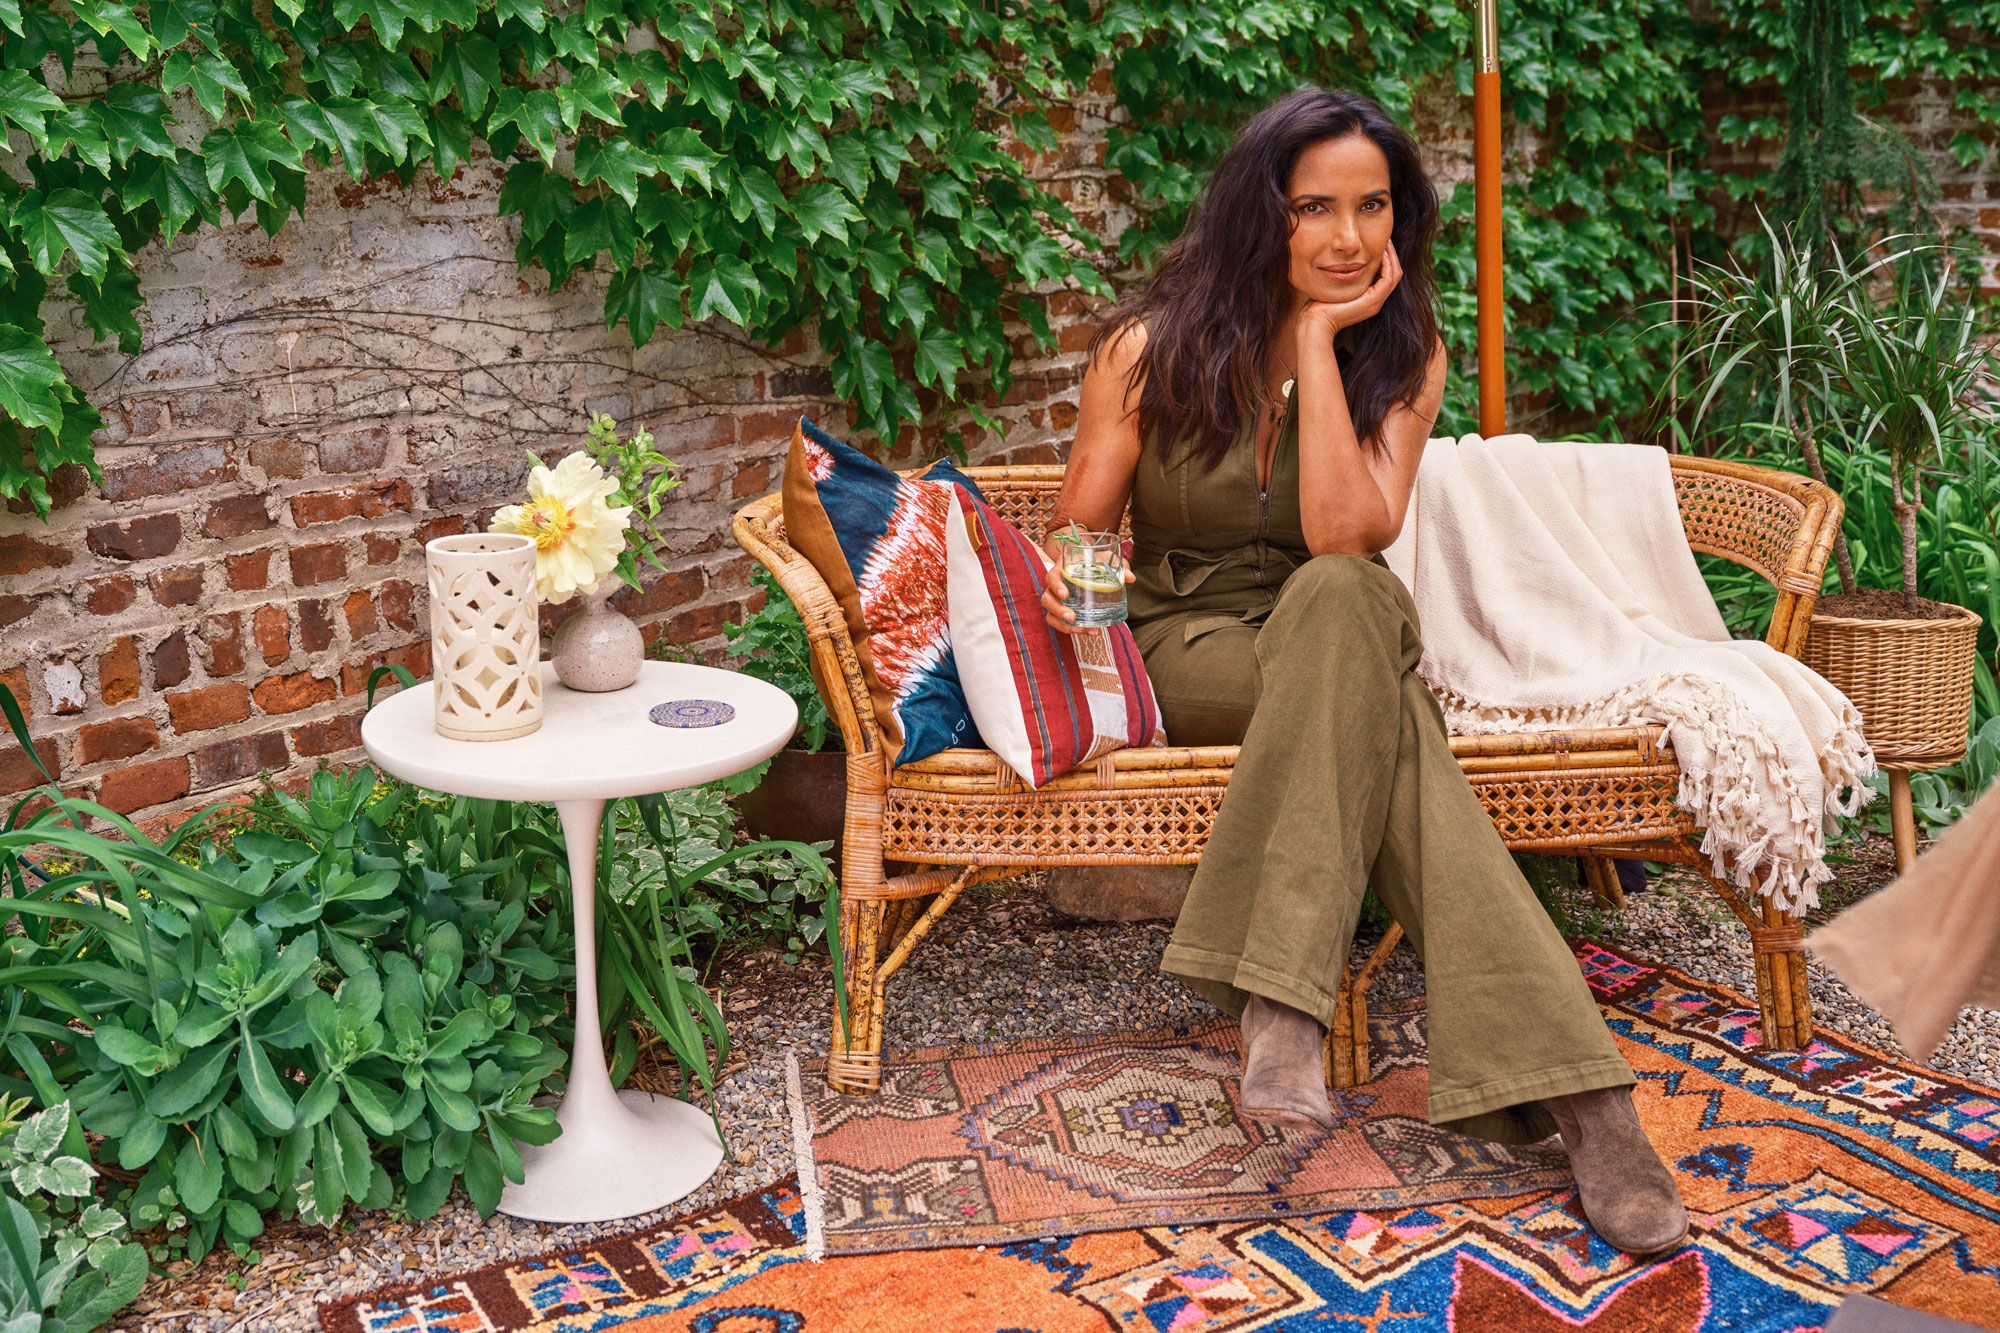 Padma Lakshmi with cocktail on an outdoor couch